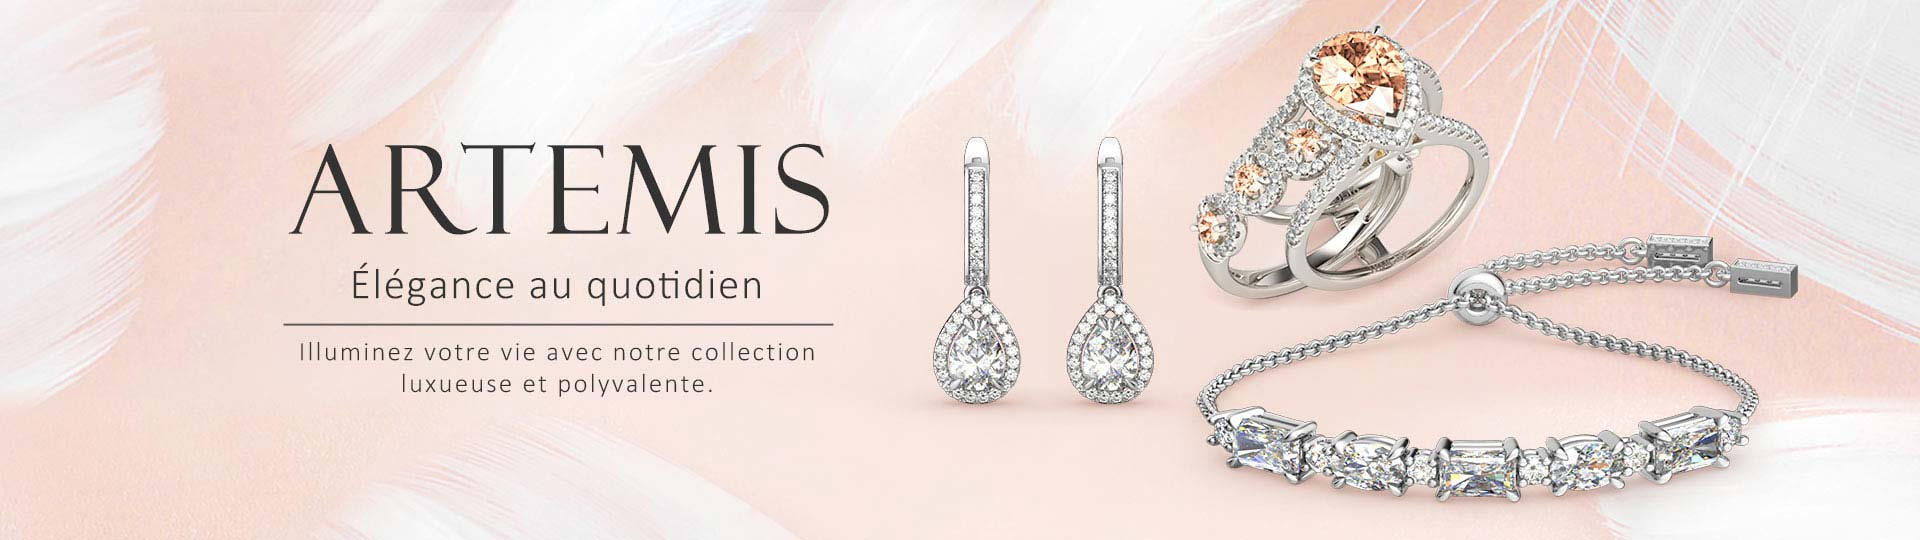 Artemis Collection